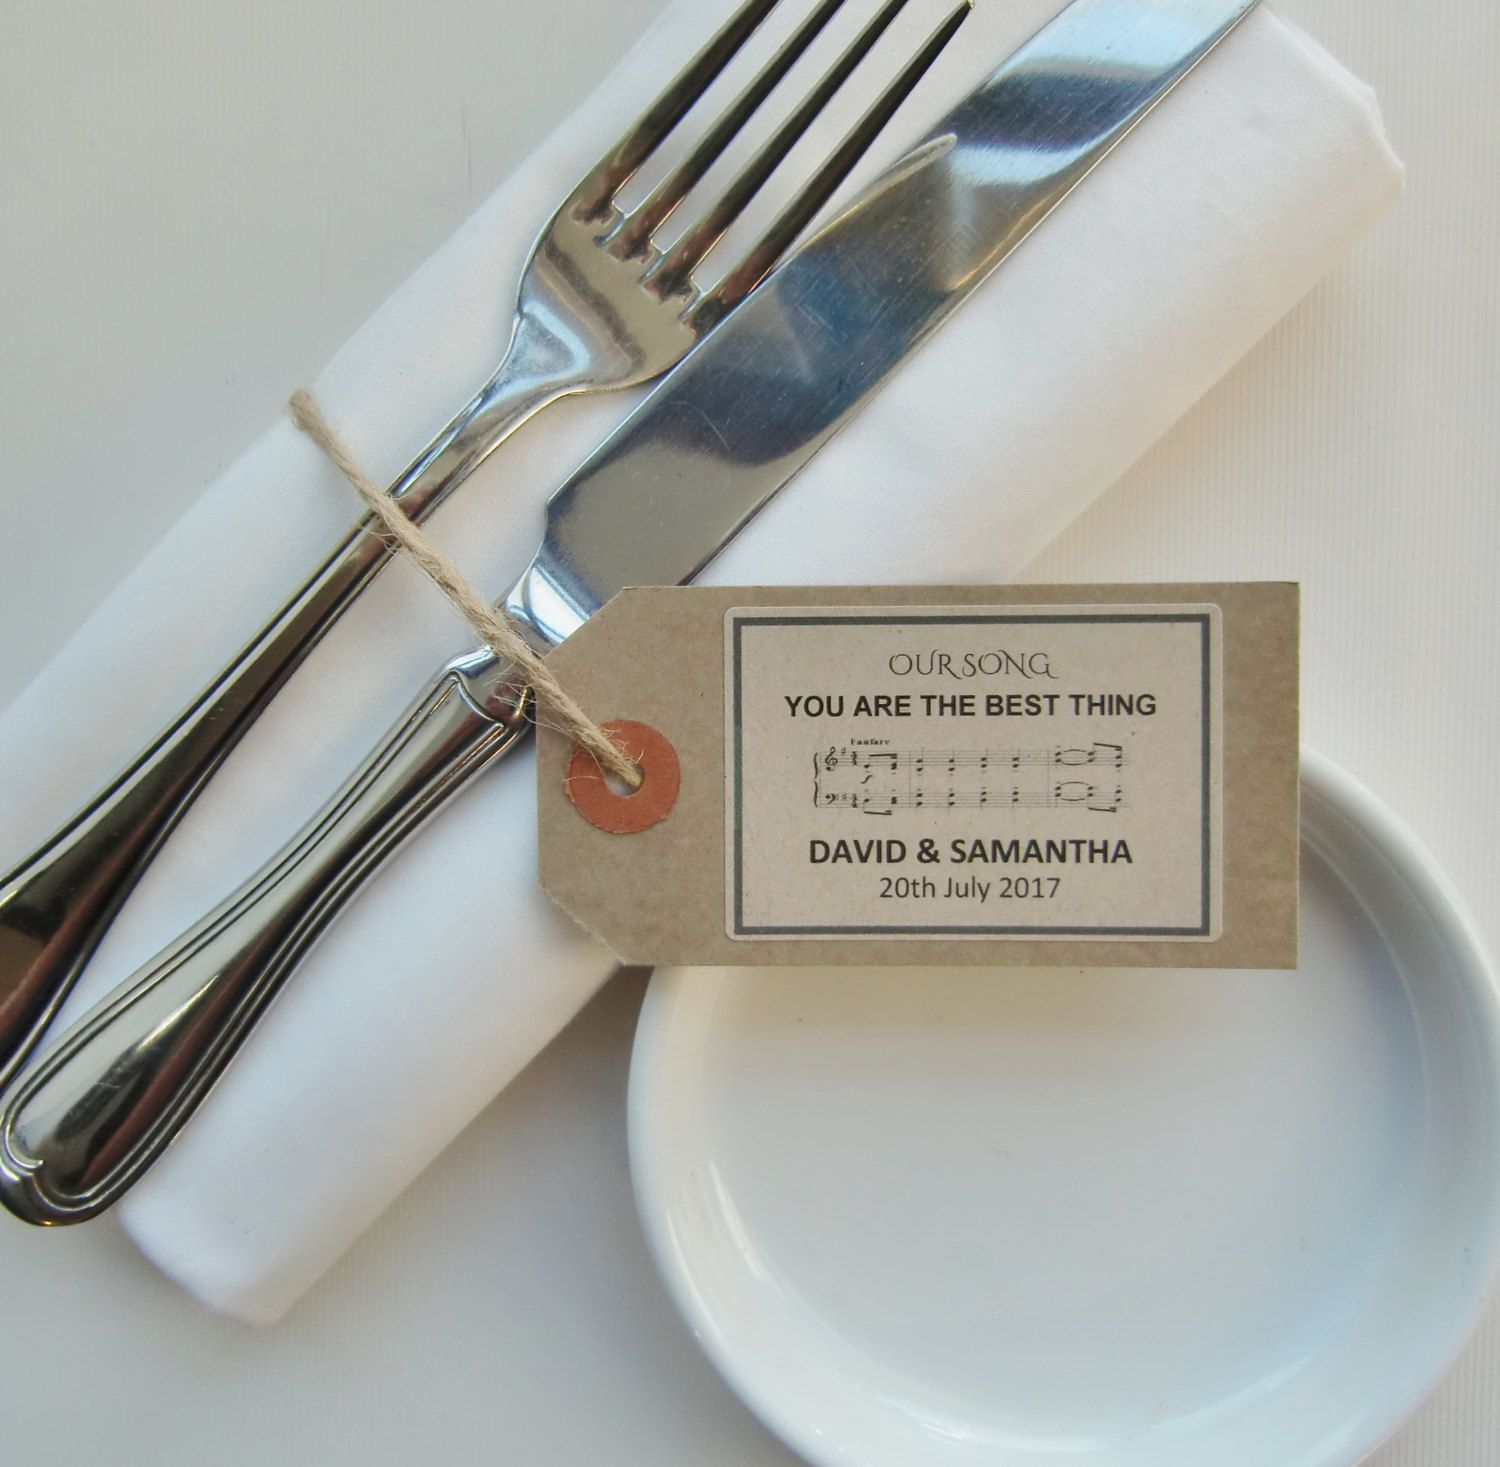 Rehearsal Dinner Ideas Napkin Ties WEDDING SONGS Rustic Tags With Ribbon String Choice Of Music Wedding